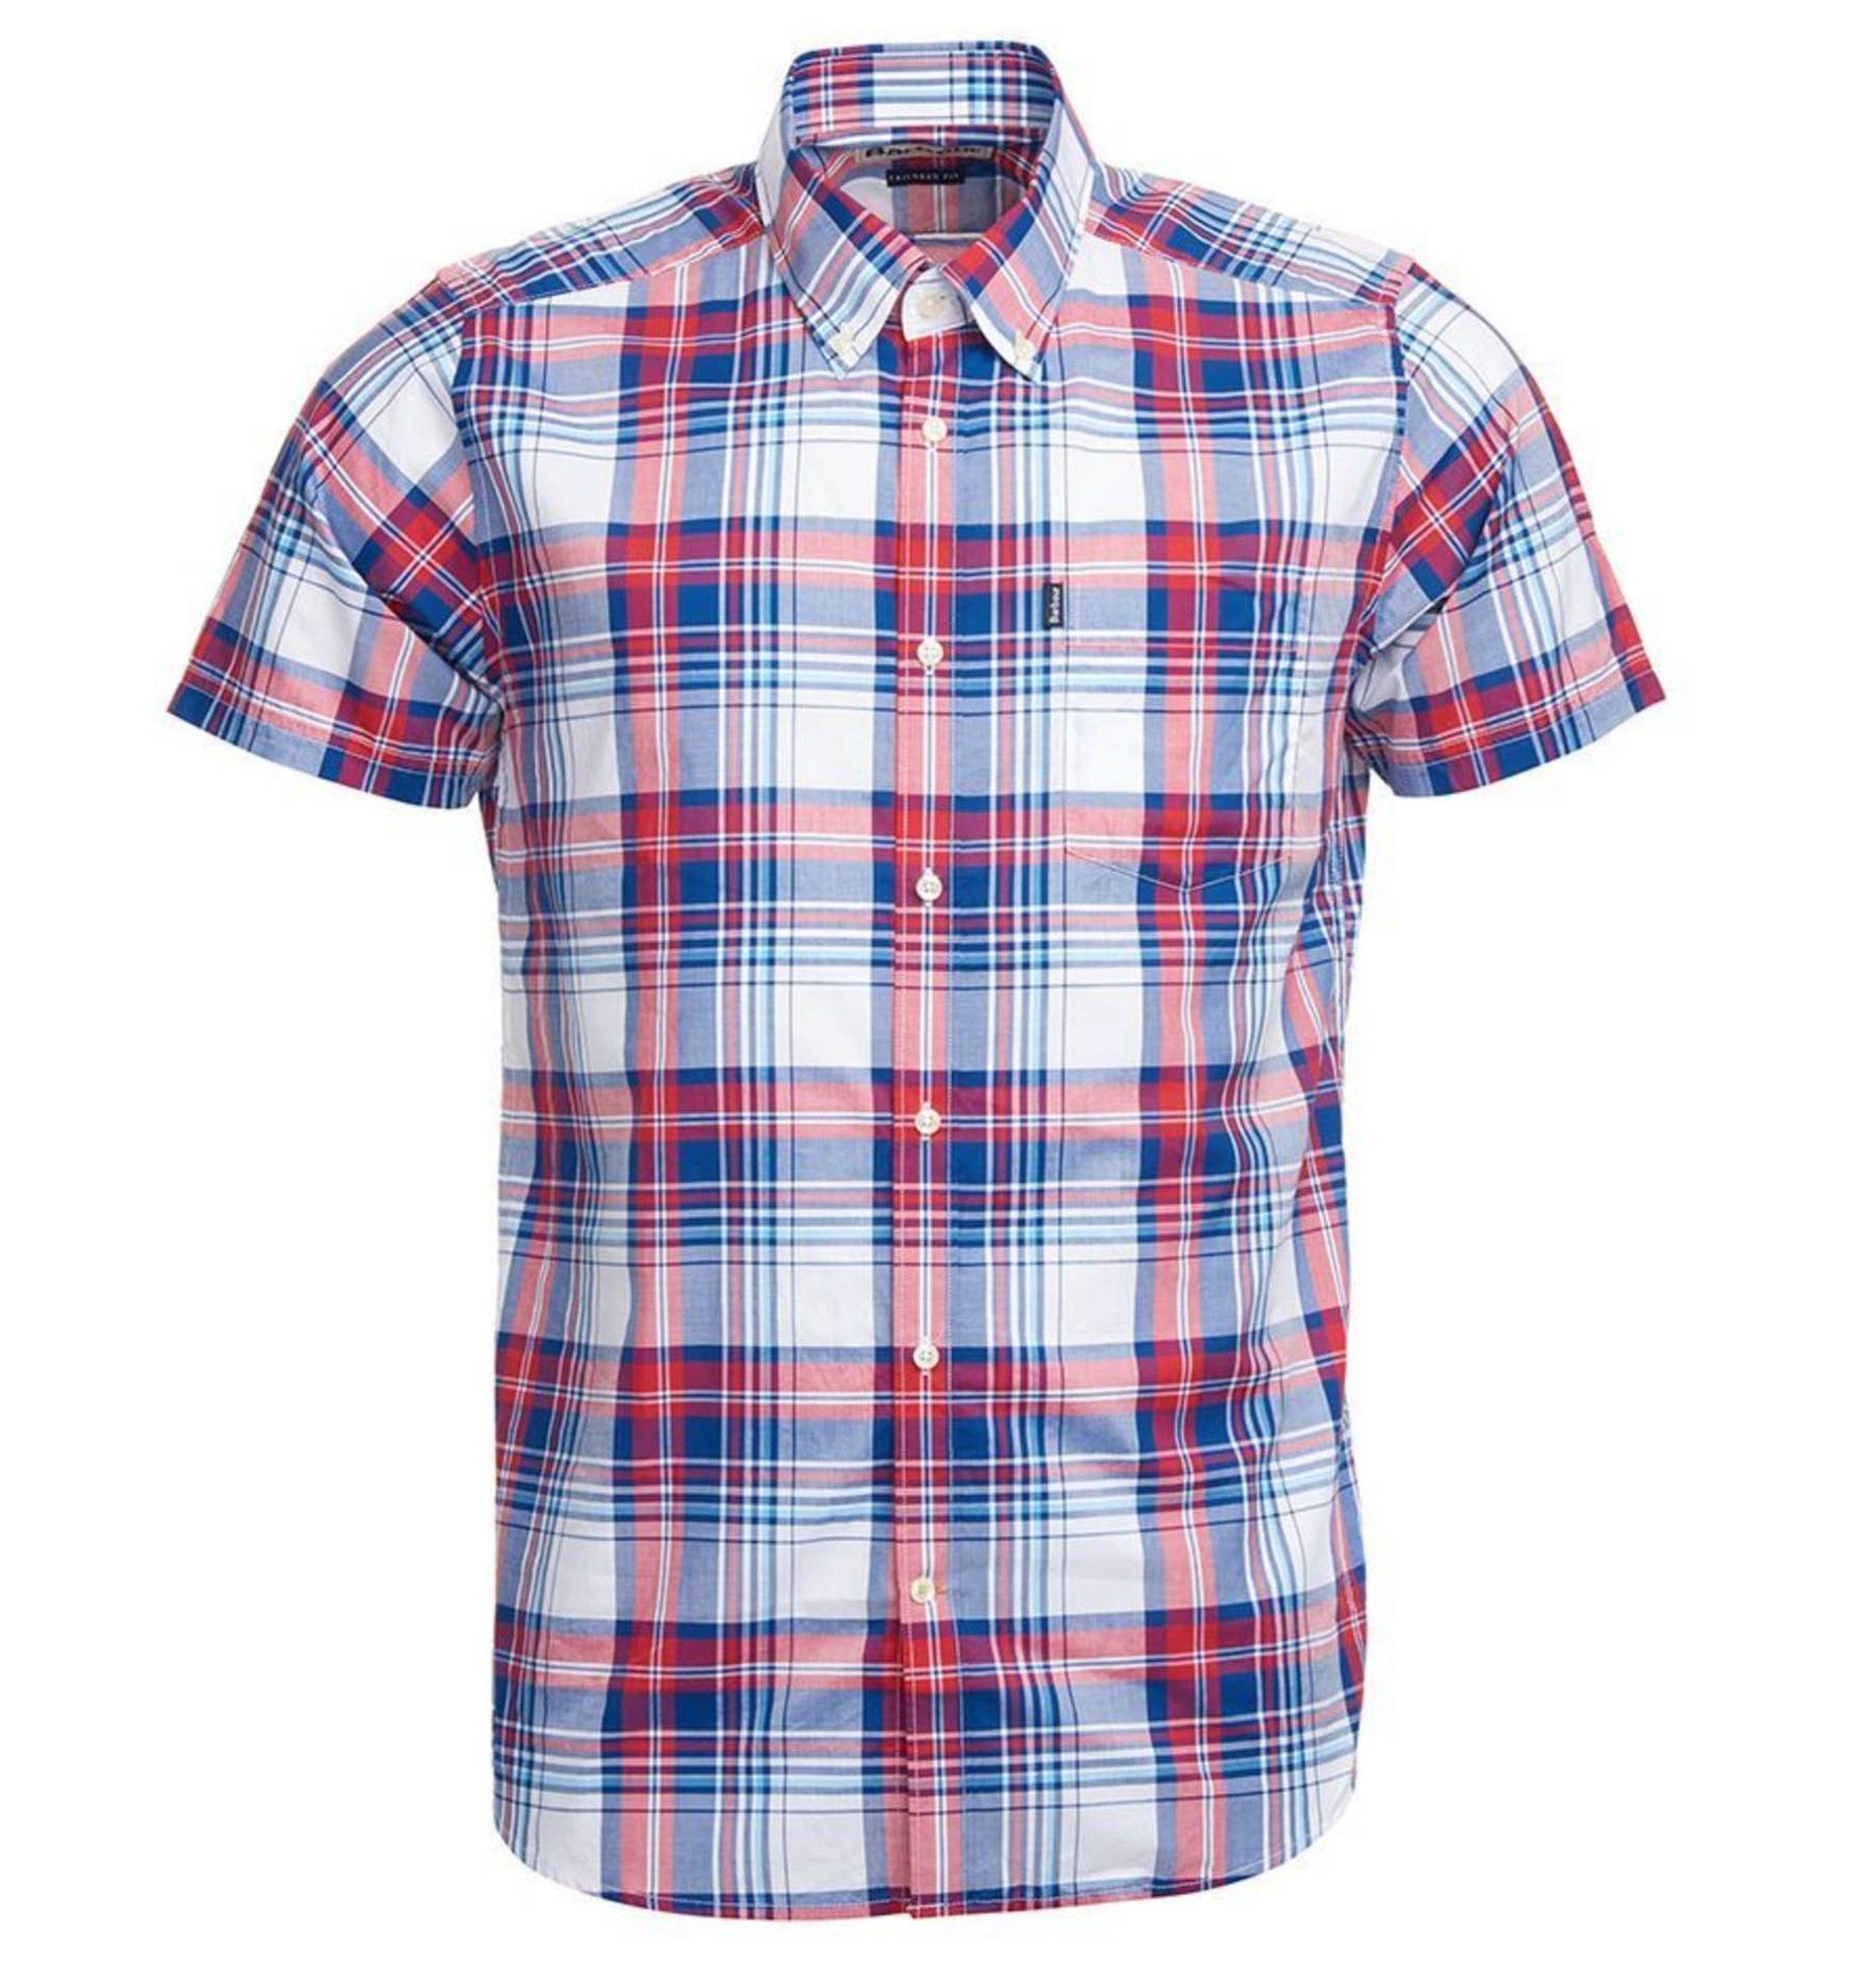 Barbour, Gerald Short Sleeve Tailored Shirt, Red